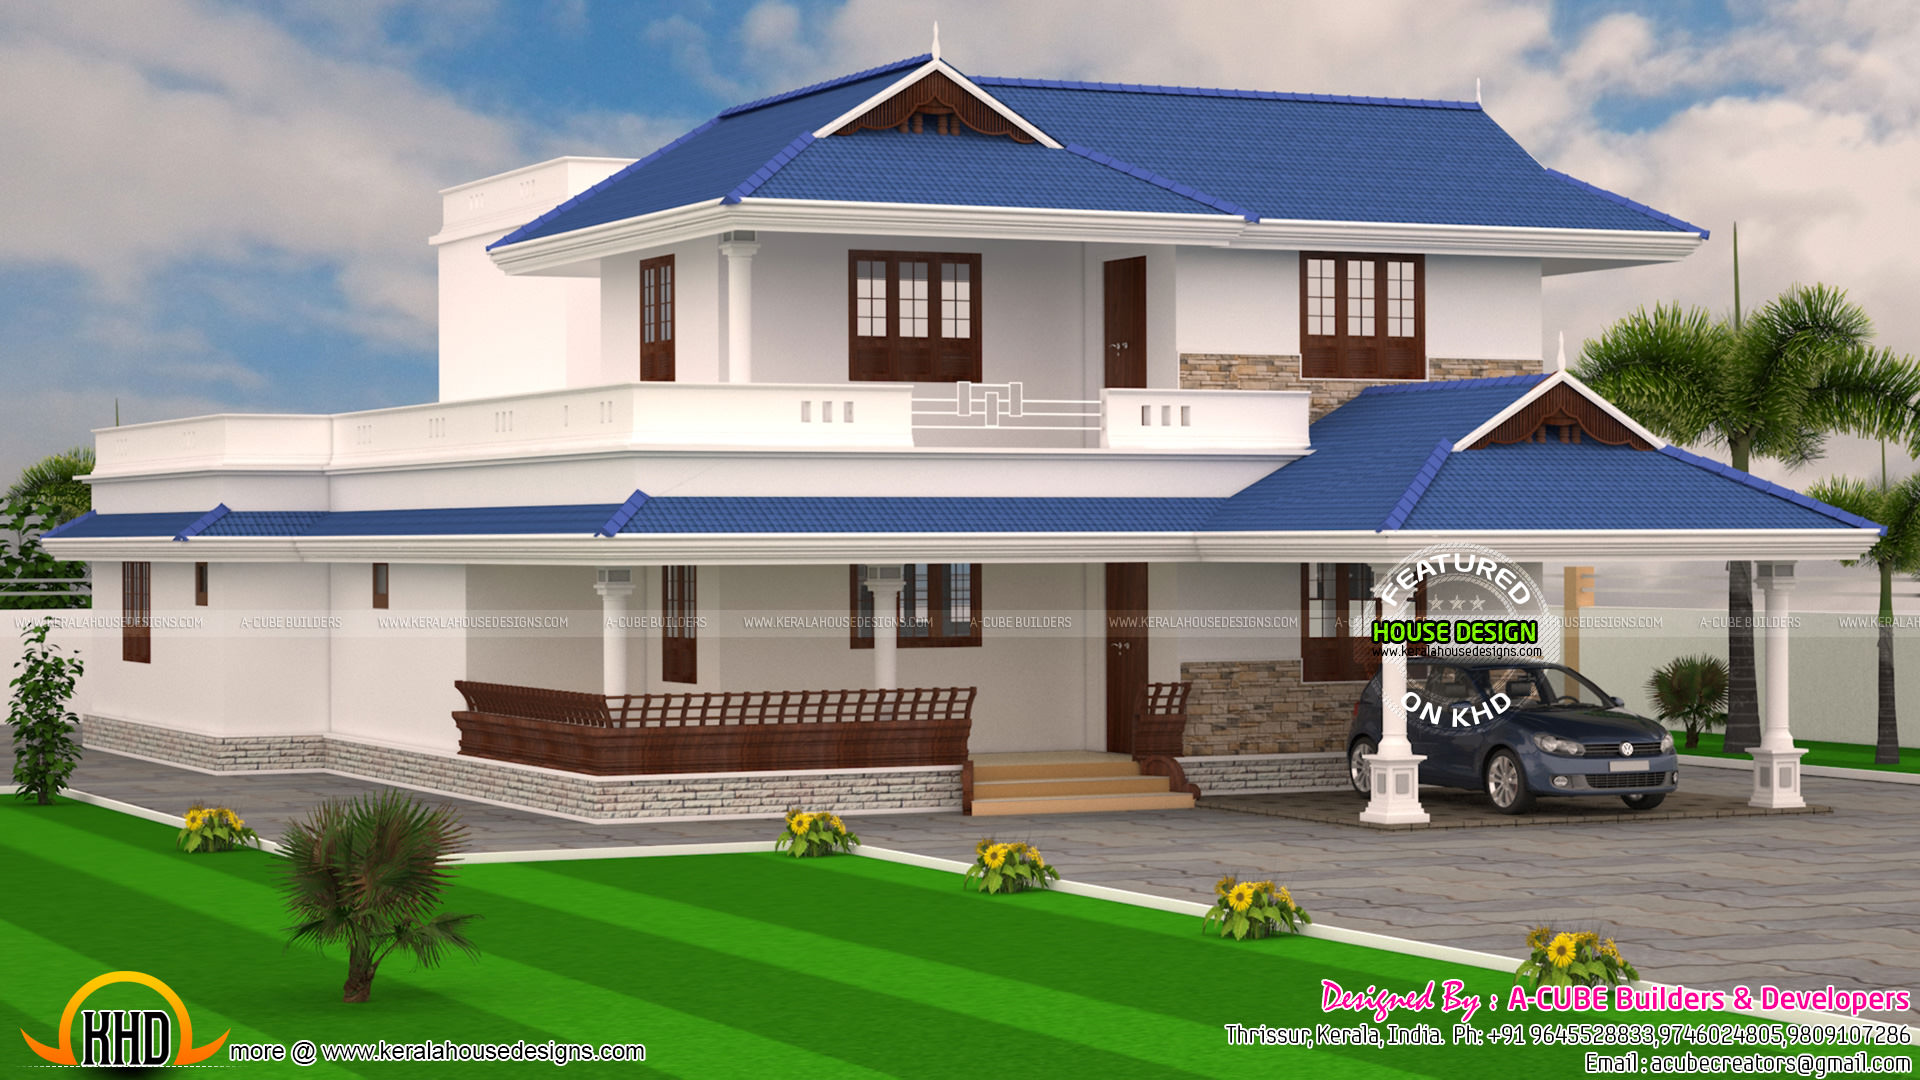 Kerala new model house joy studio design gallery best for Kerala new home pictures